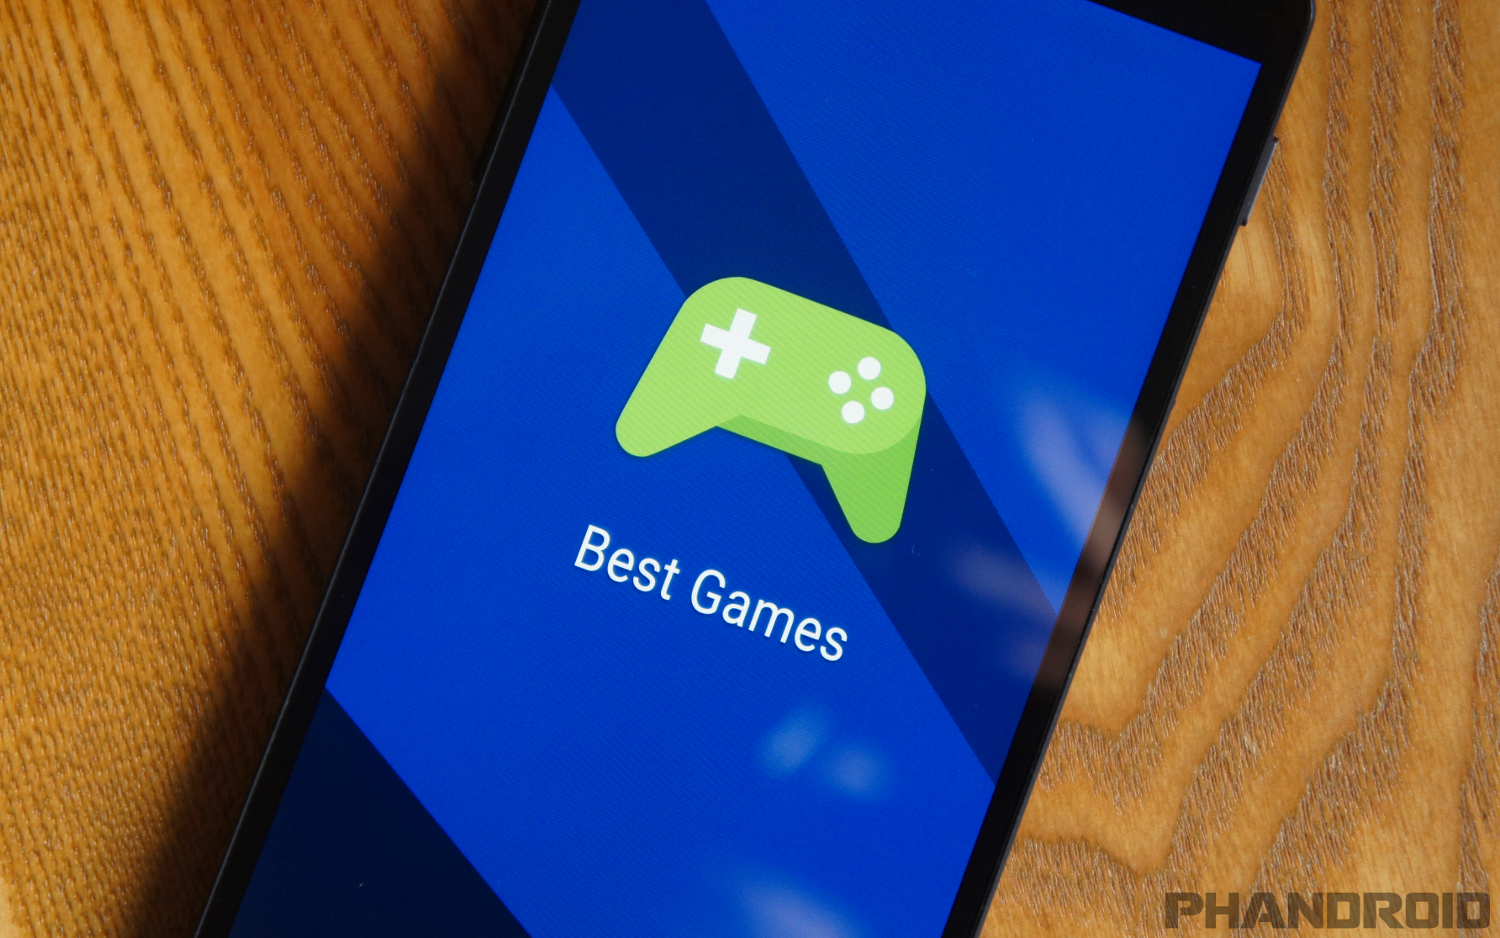 5 new Android games to check out this week (APR 21, 2019)